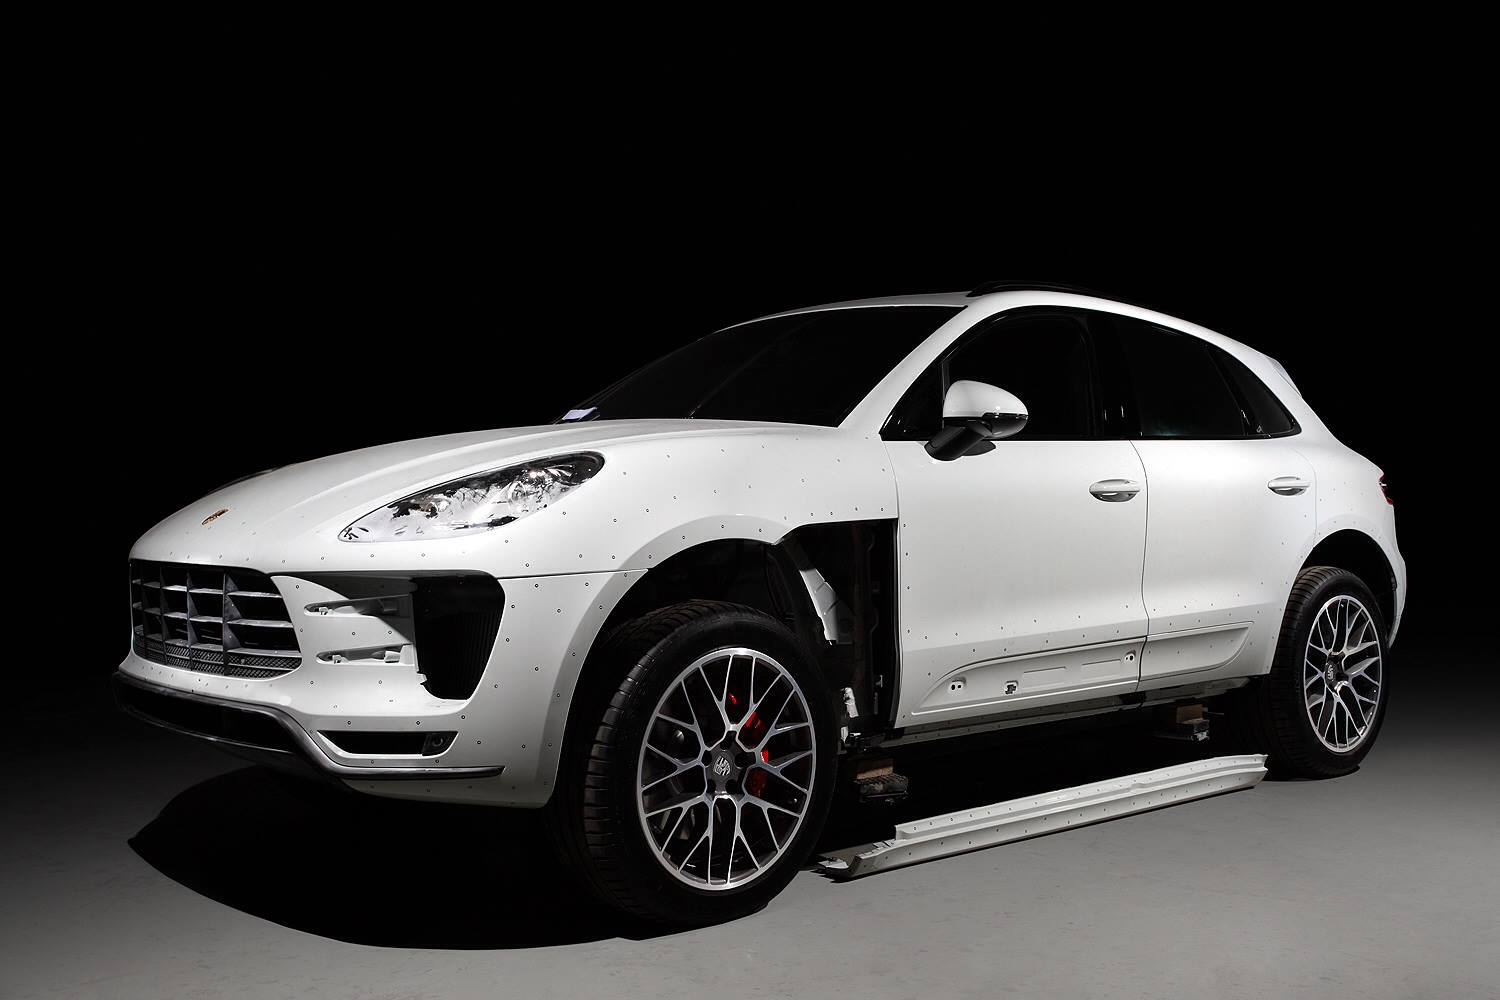 Porsche Macan Wide Body Kit Already Being Developed by ...